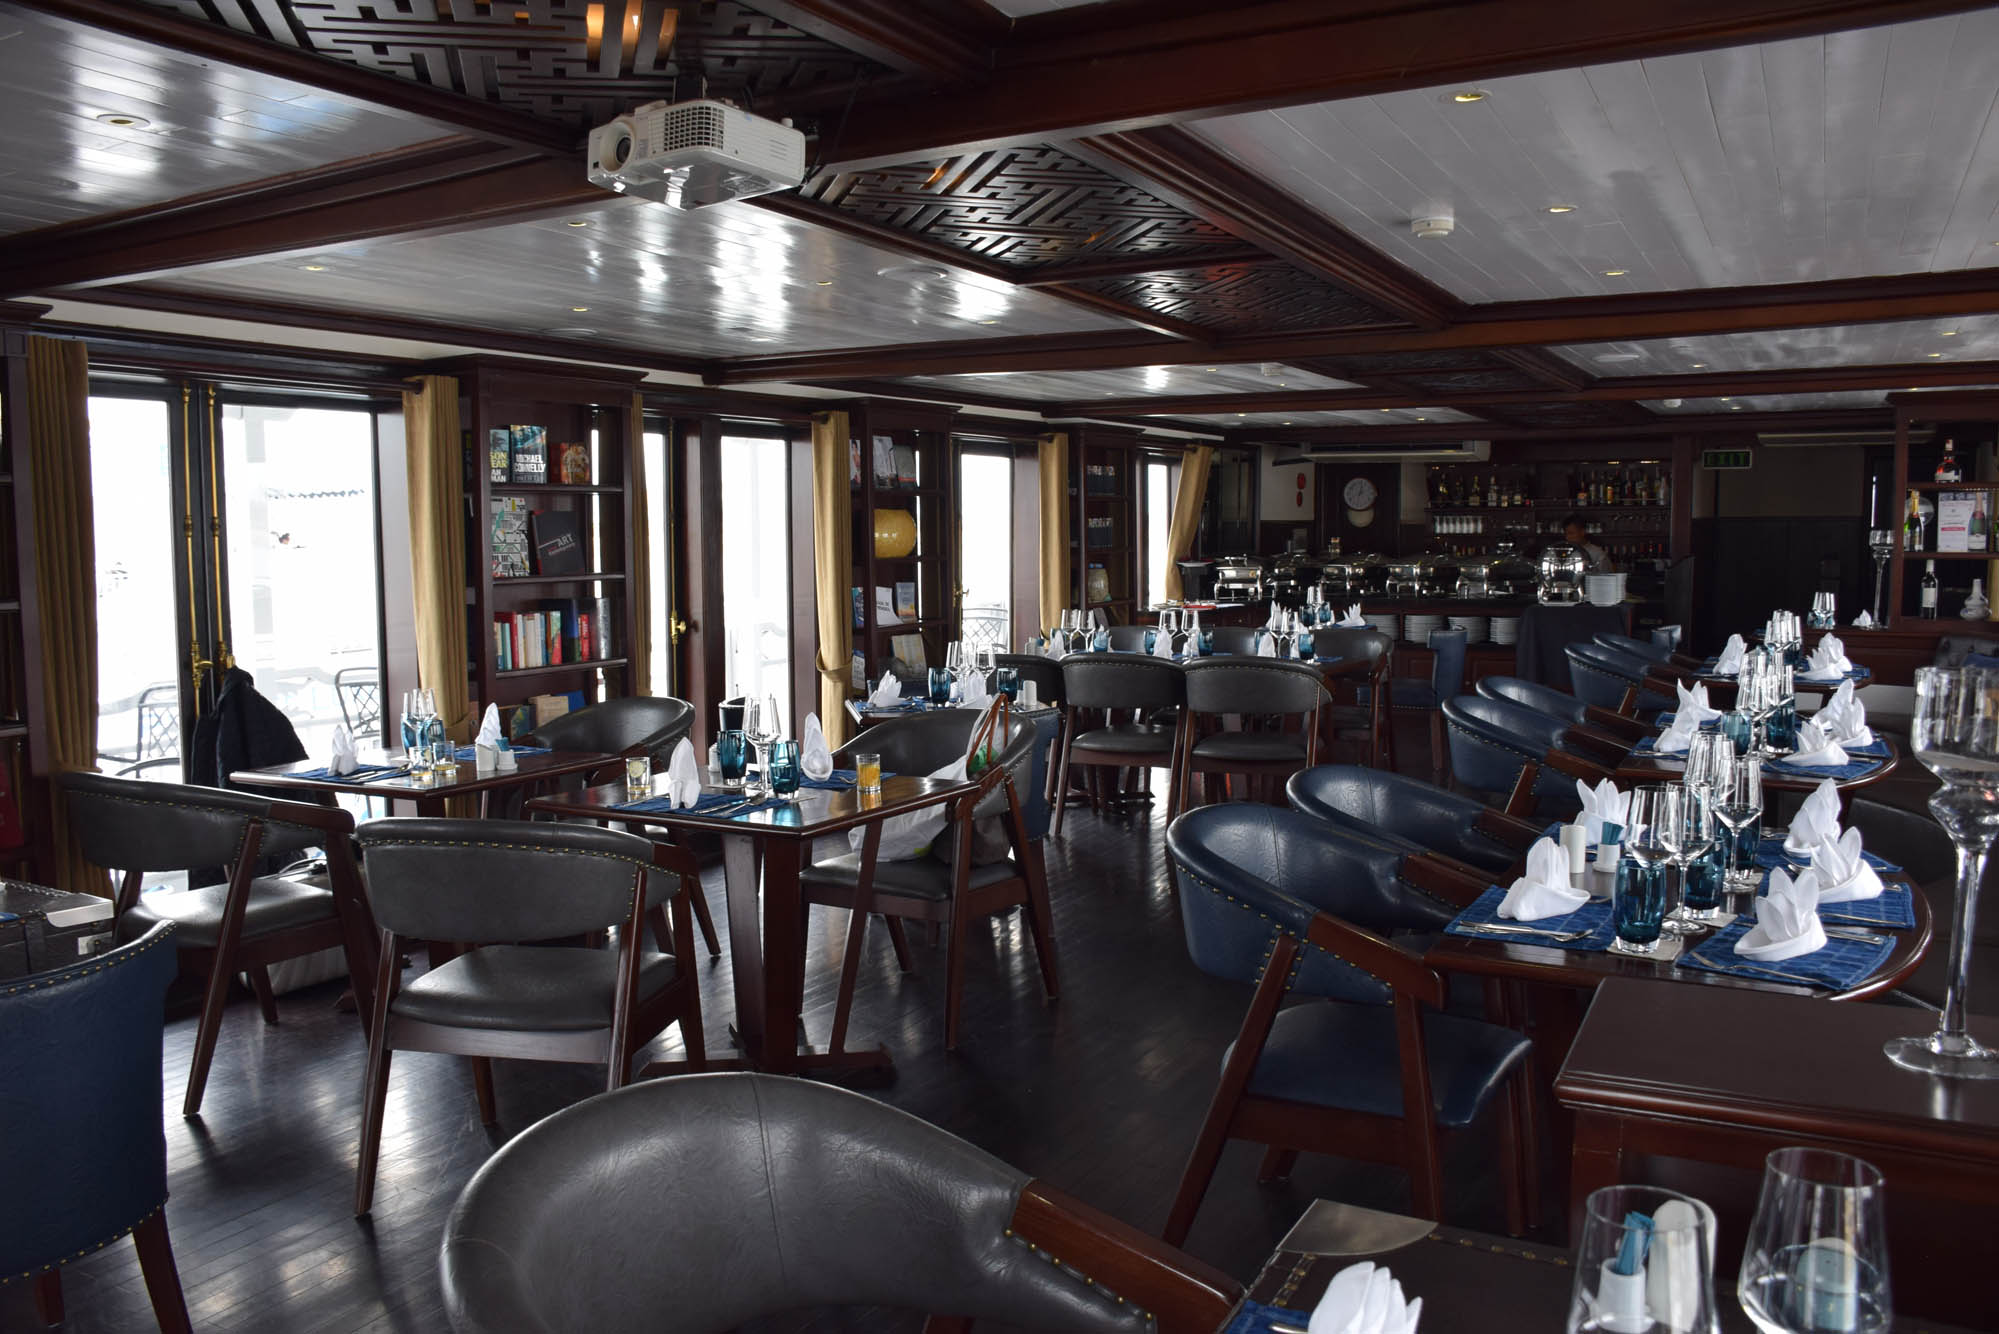 Restaurante do barco - Paradise Luxury Cruise - Halong Bay